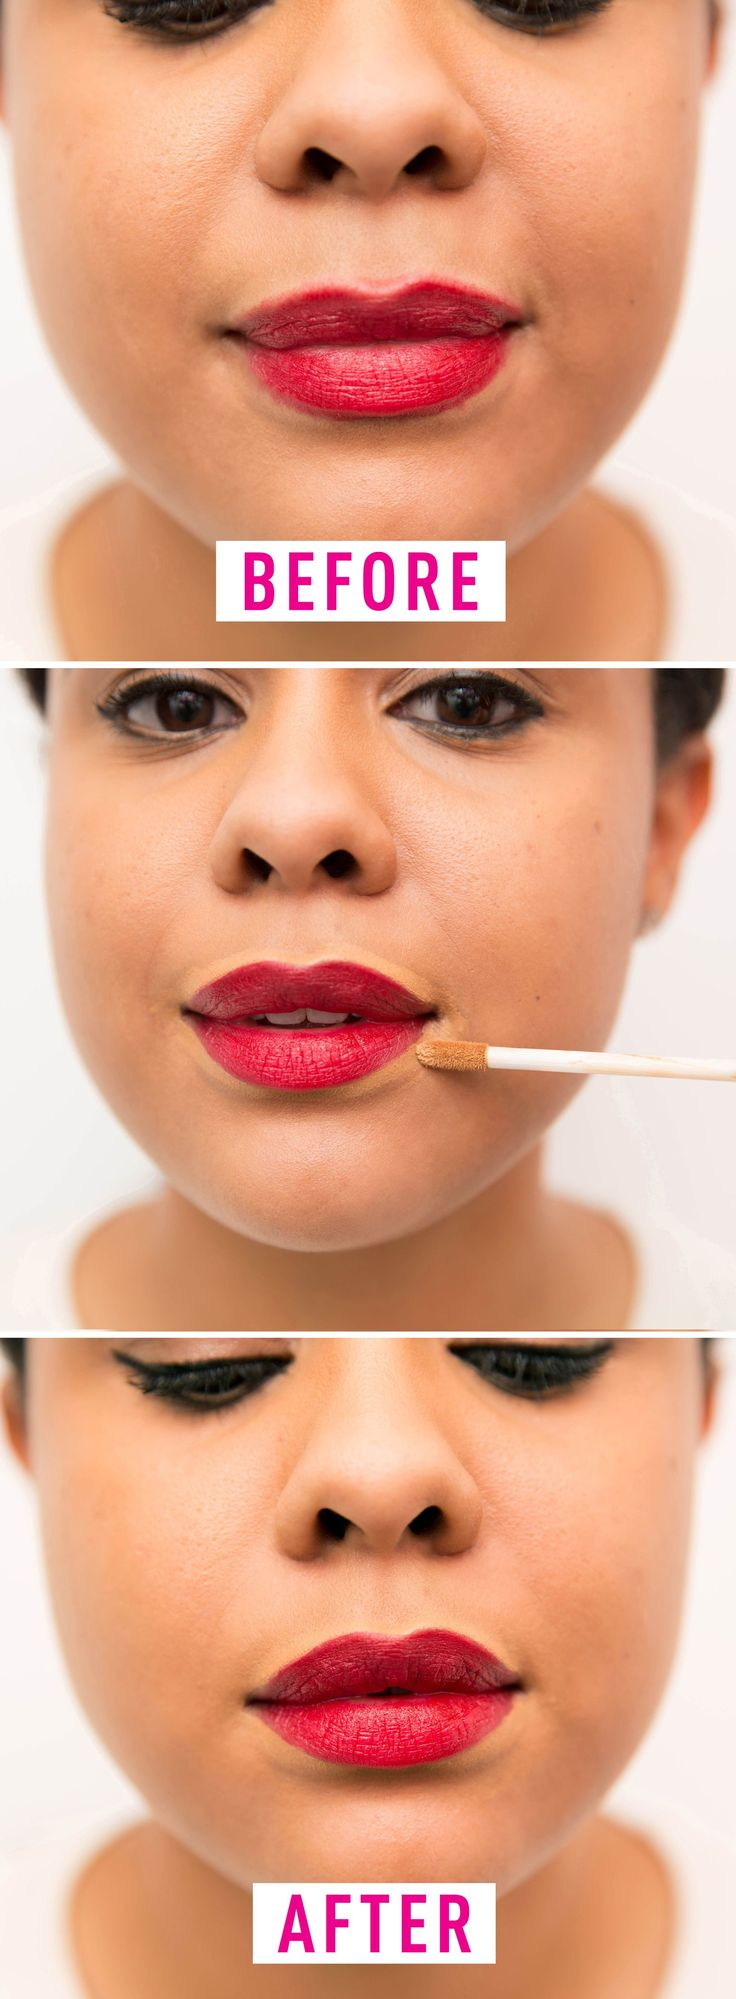 18 Genius Hacks for Fixing Makeup Mistakes Every Woman Makeswomansday